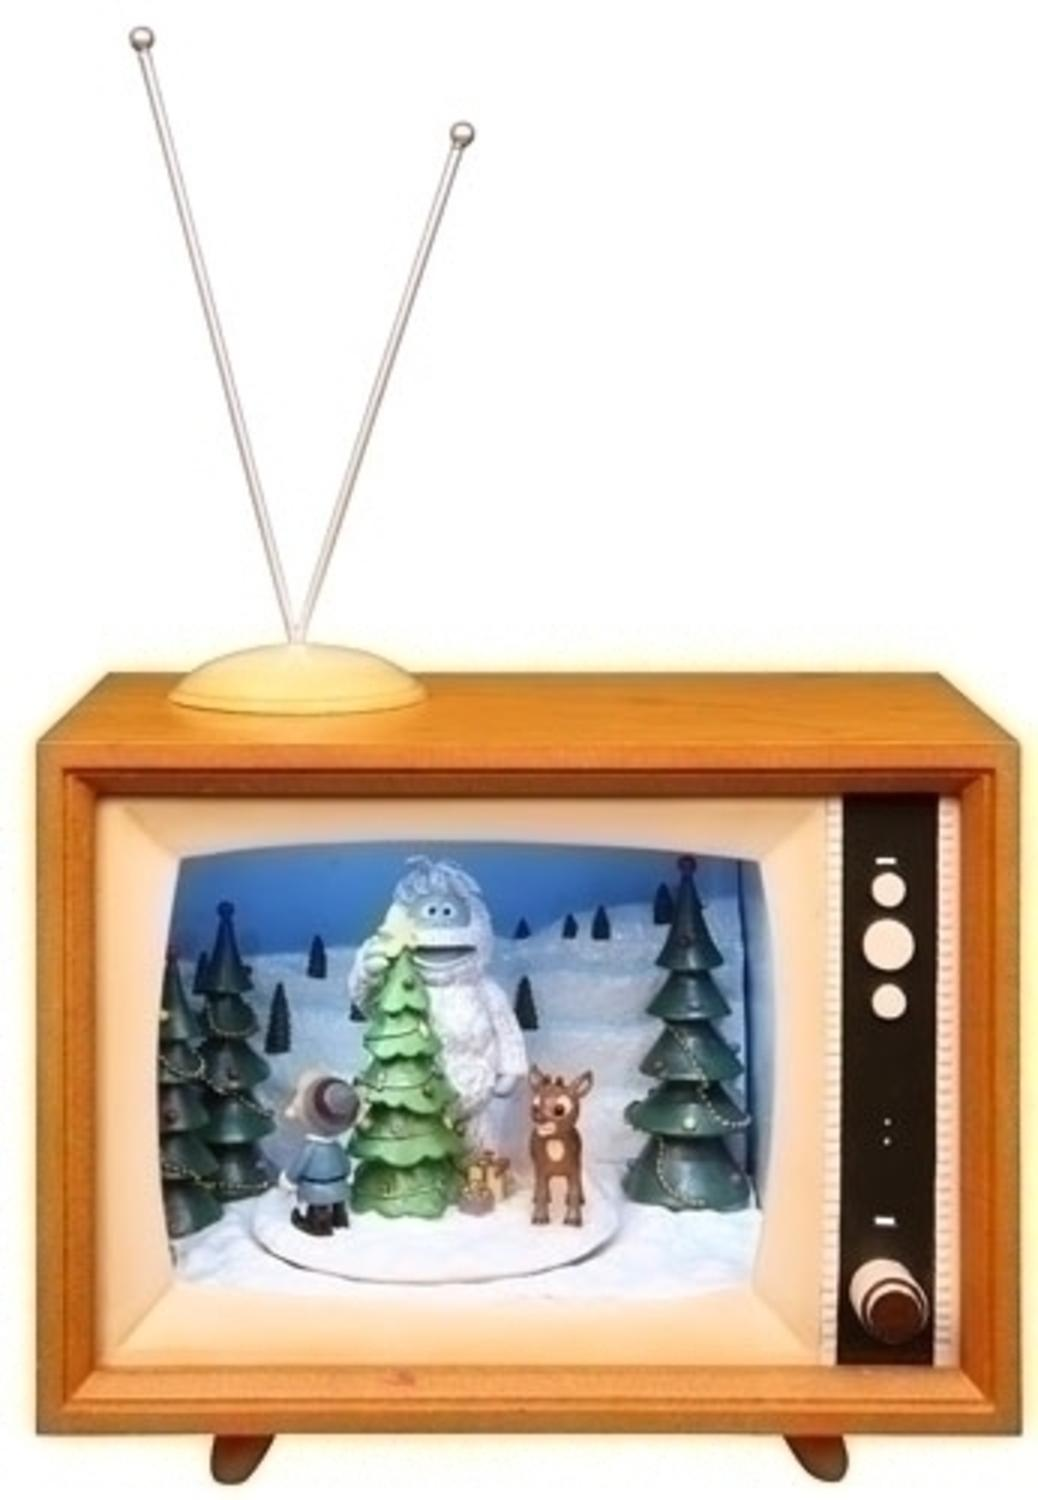 7 musical animated rudolph winter scene tv box christmas decoration walmartcom